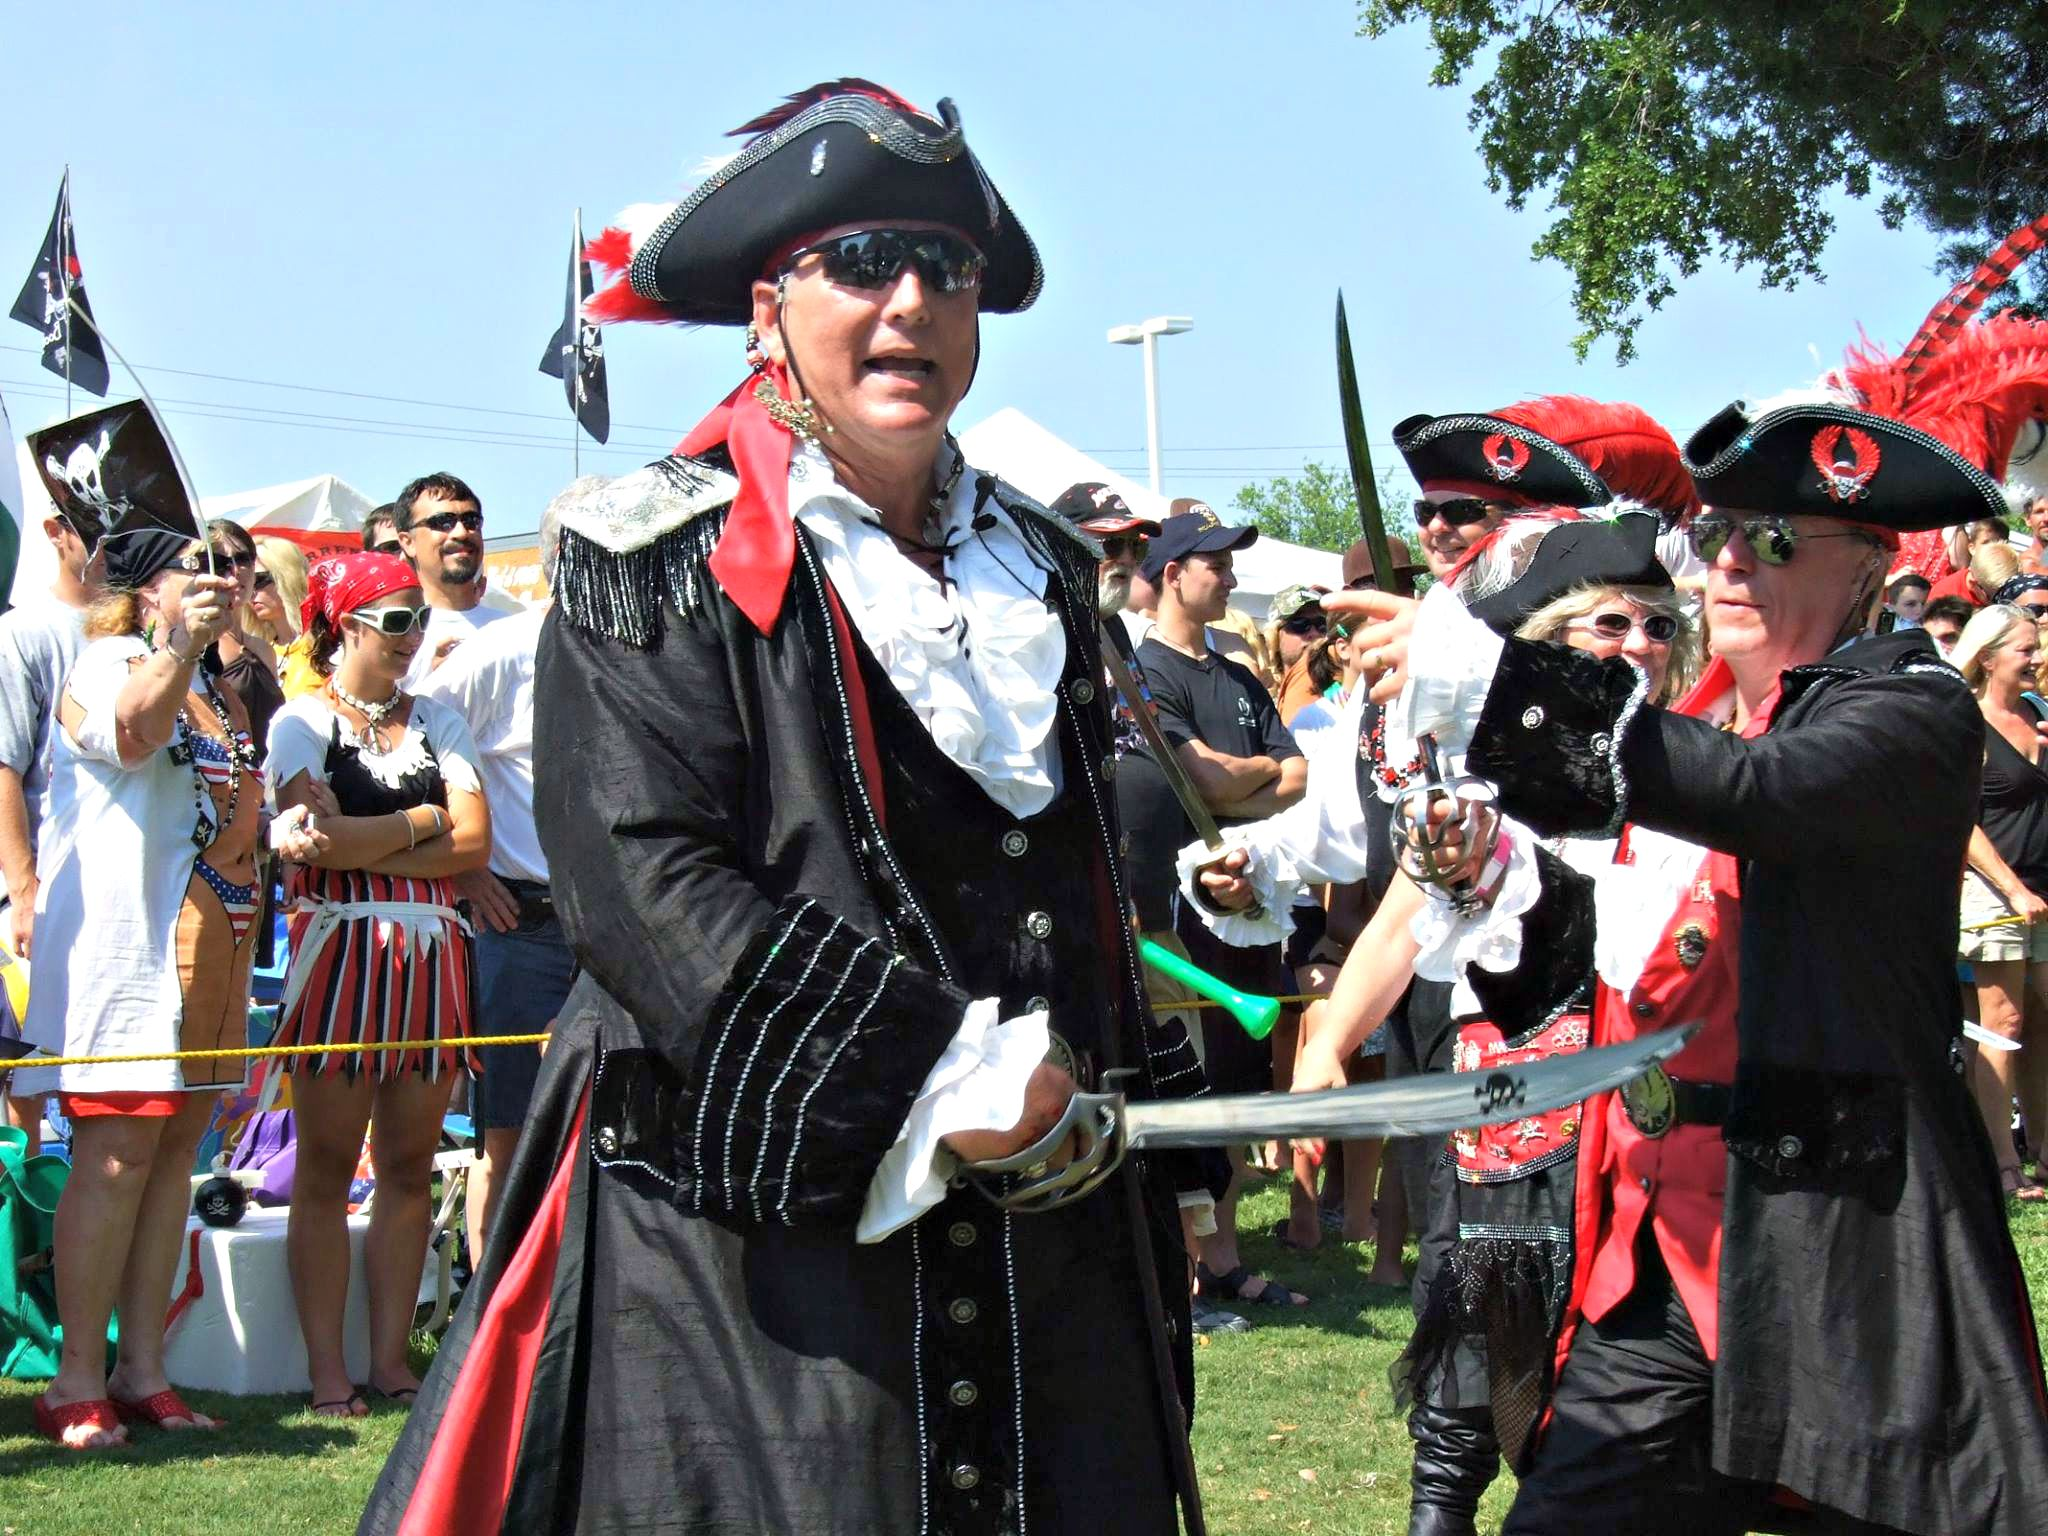 Two pirates skirmish with sword and knife in front of crowd at Billy Bowlegs Festival in Fort Walton